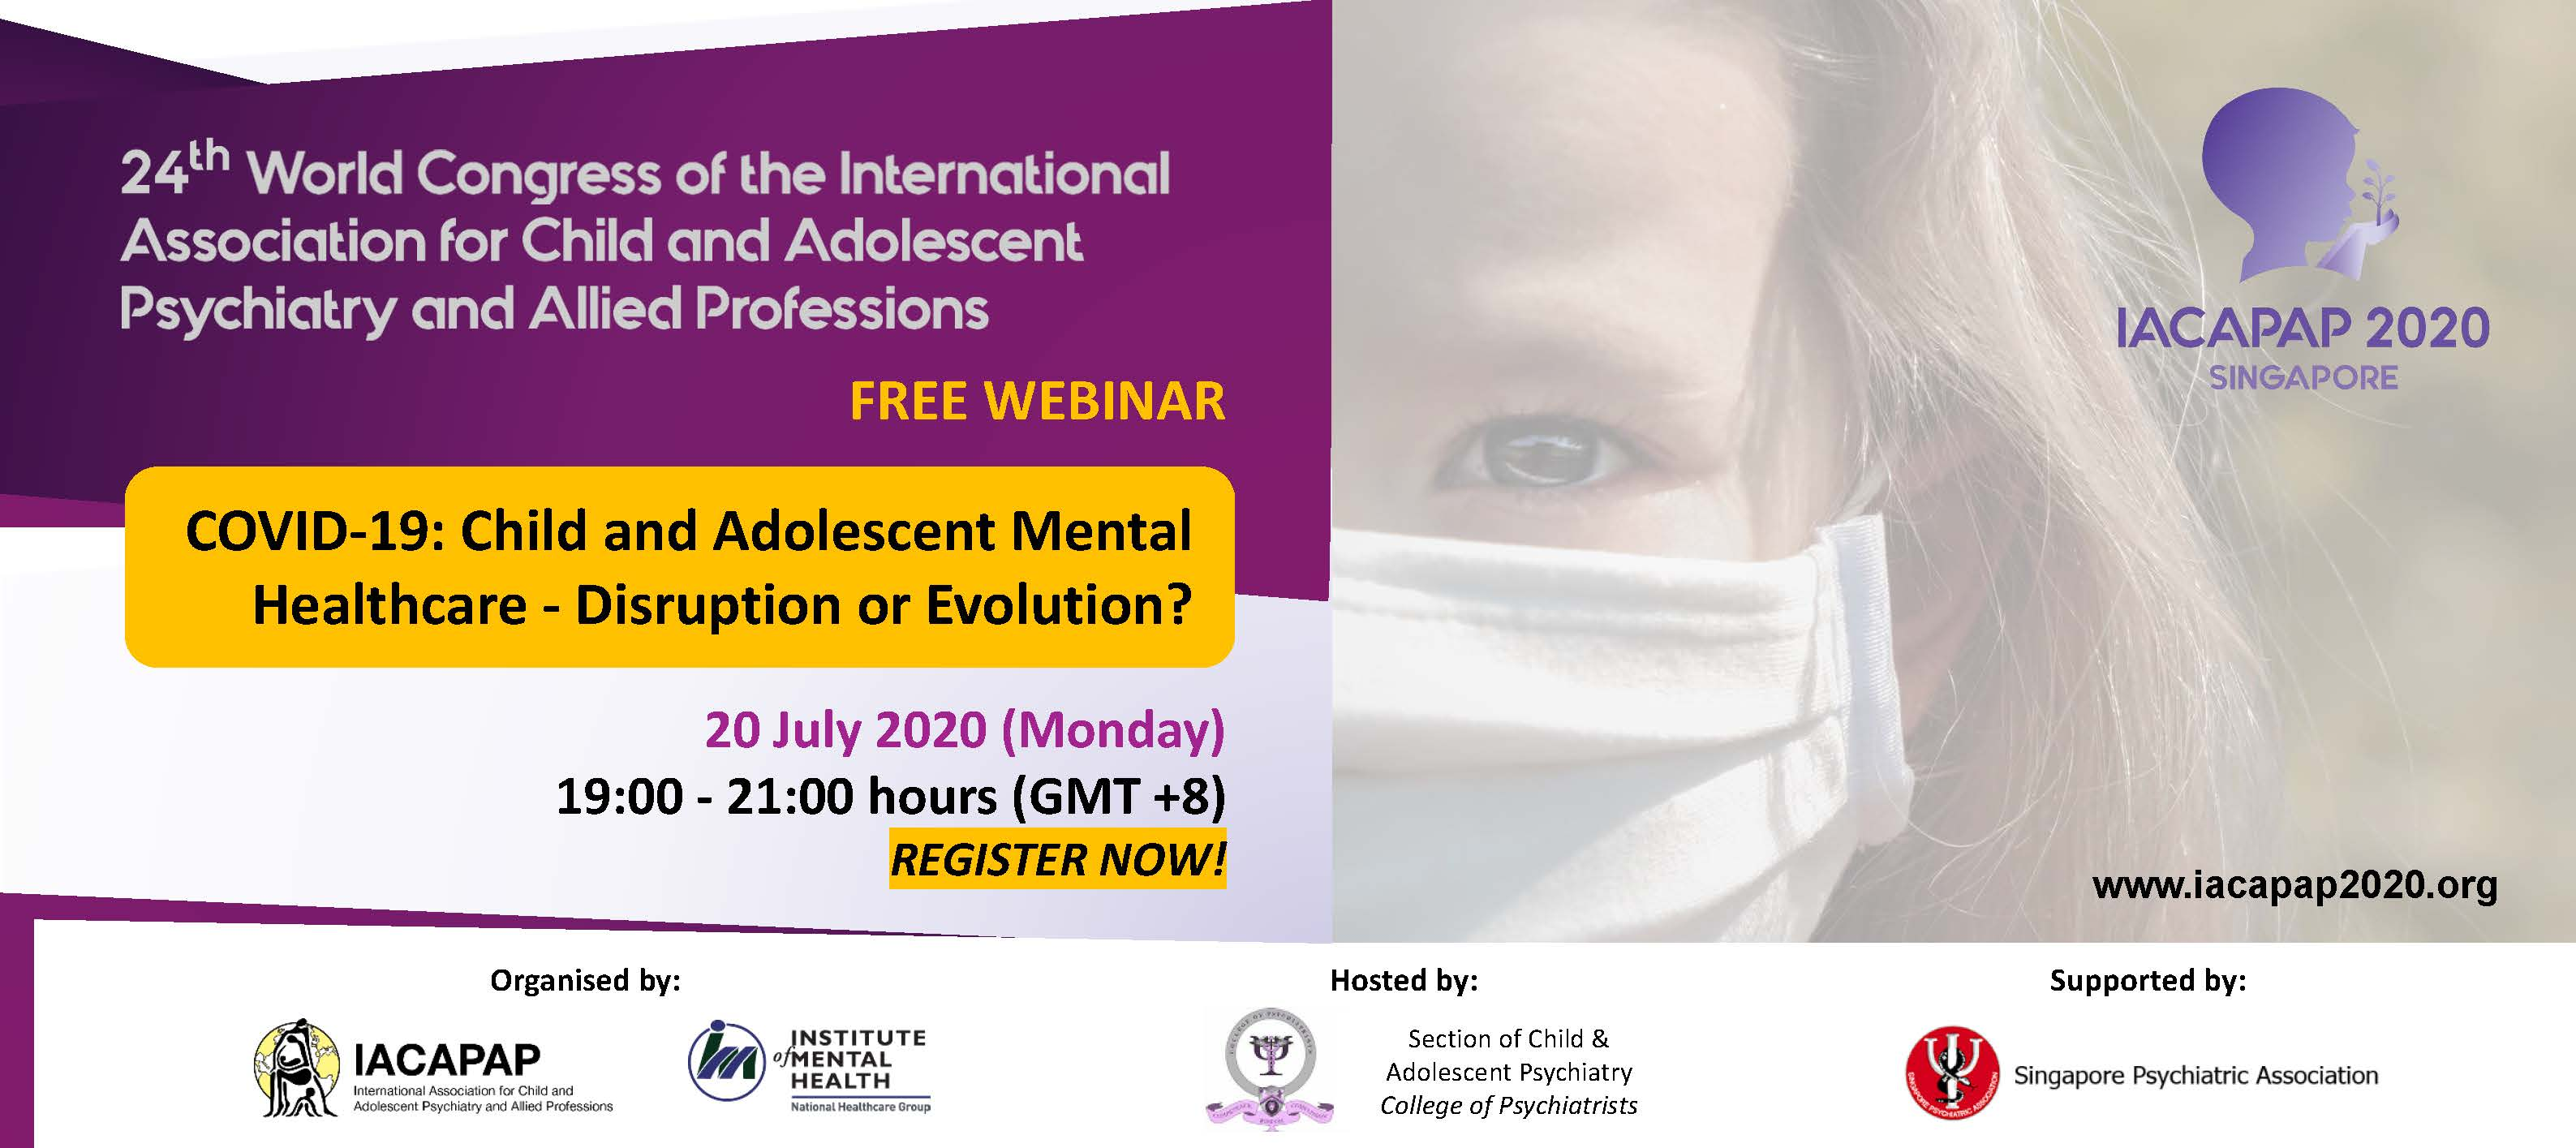 Plenareno Depression and Psychiatry Webinar 2020